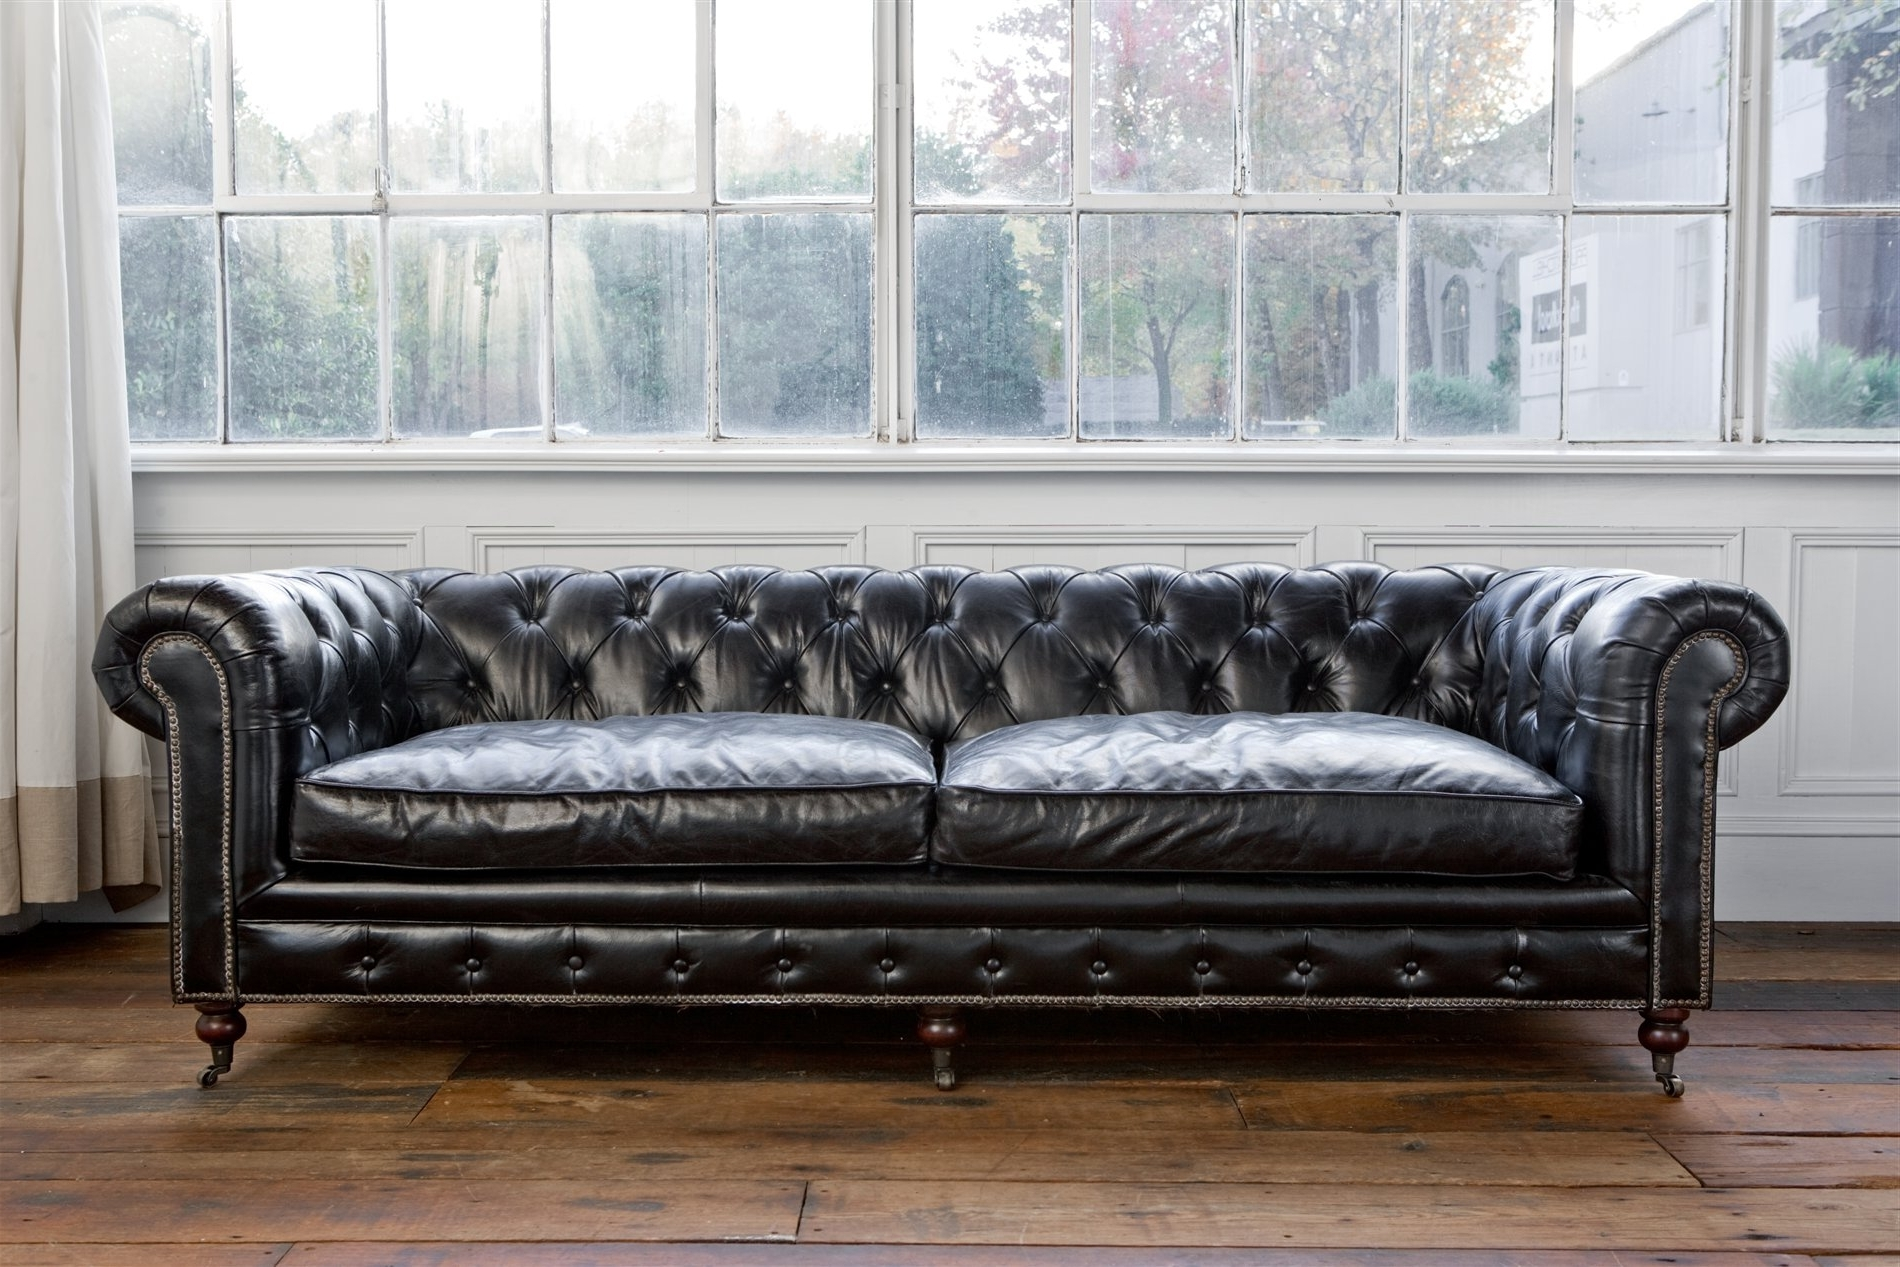 Most Recently Released Tufted Leather Chesterfield Sofas For Regina Andrew Design 4 164vbk Extra Deep Blk Chesterfield Sofa Med (View 3 of 20)